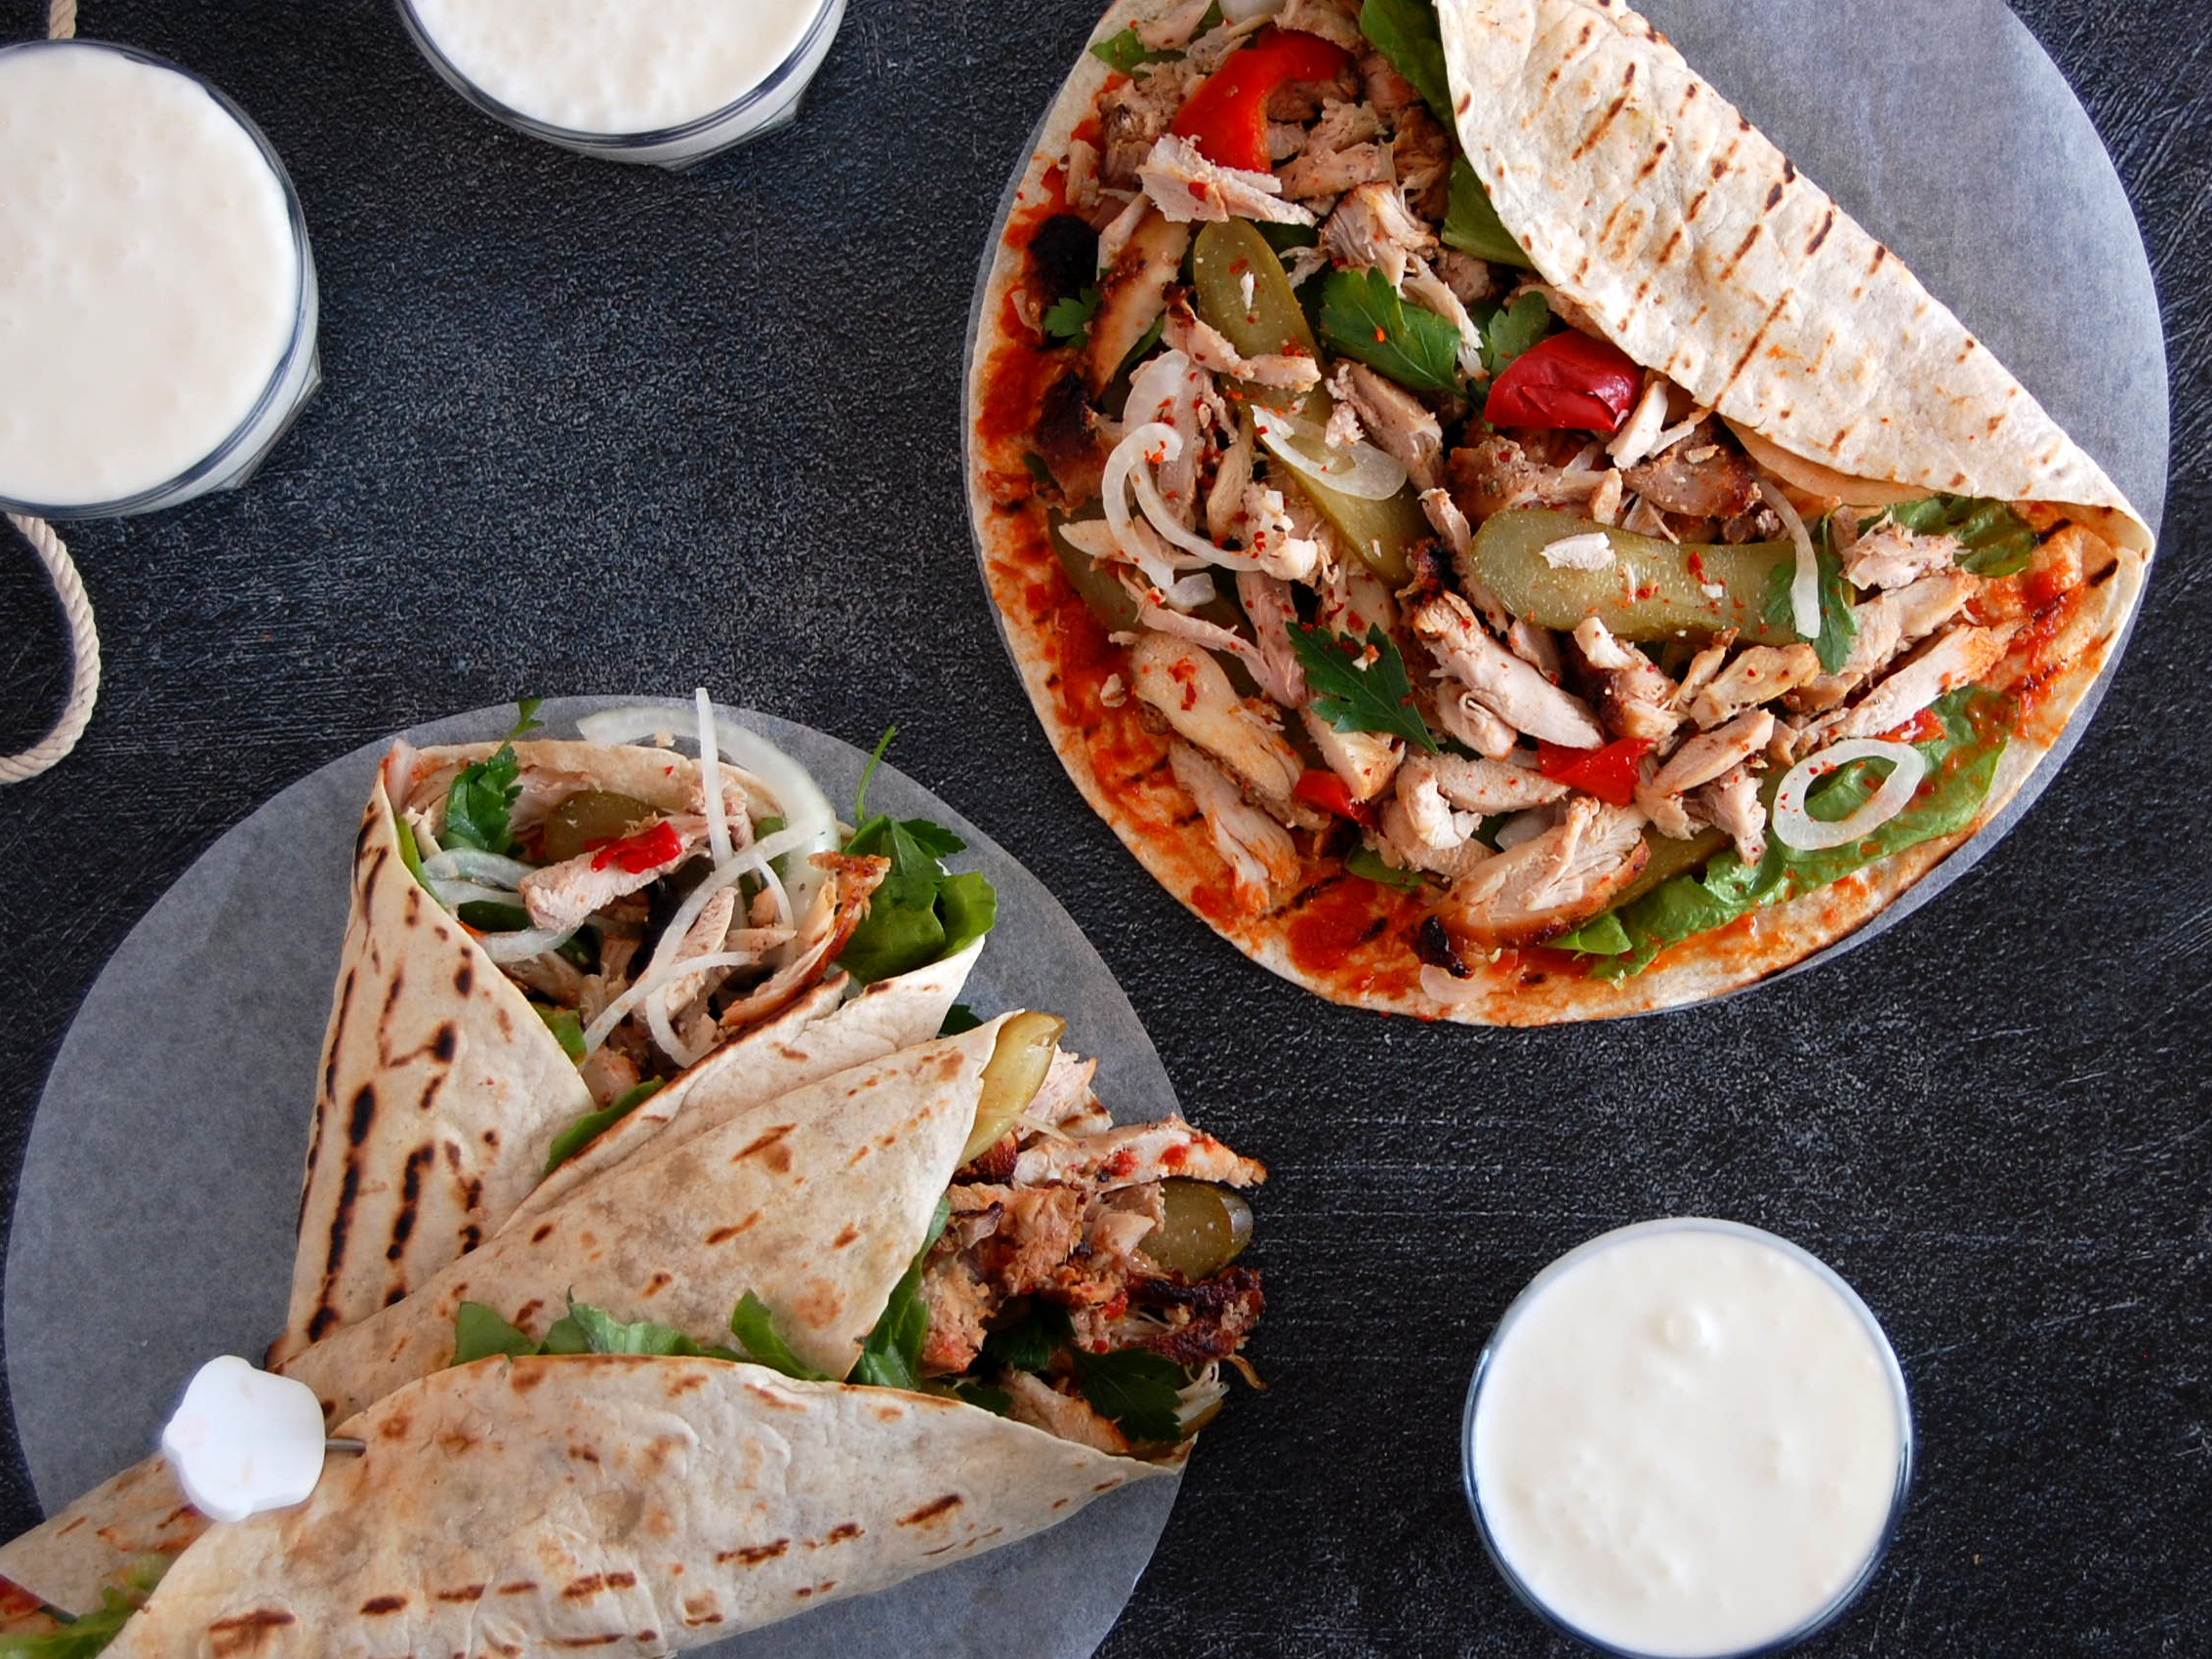 Exploringtheturkishkitchen Com Spicy Homemade Chicken Doner Span Class Rt Title Tag Hatay Style Inspired Doner Span